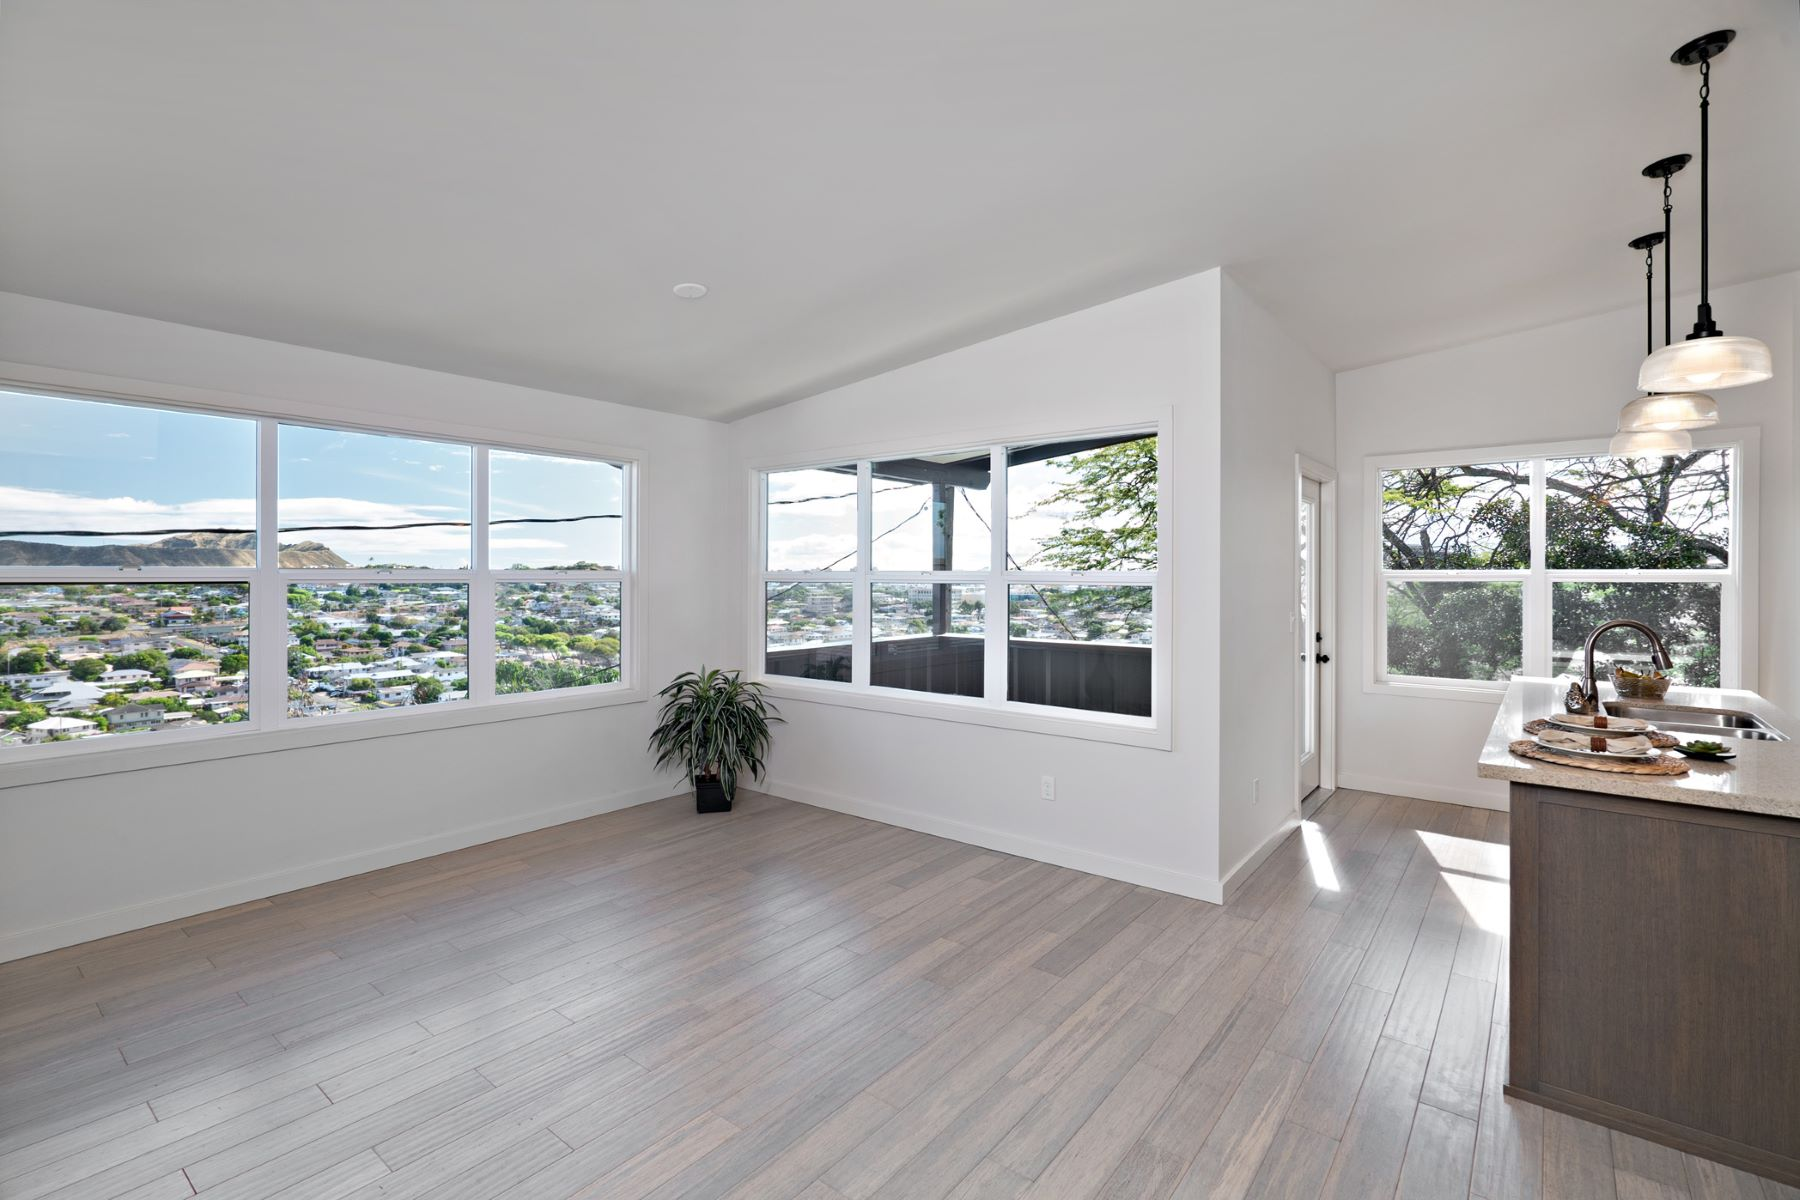 Additional photo for property listing at Hilltop Charm 3955-C Koko Drive #3 Honolulu, Hawaii 96816 United States